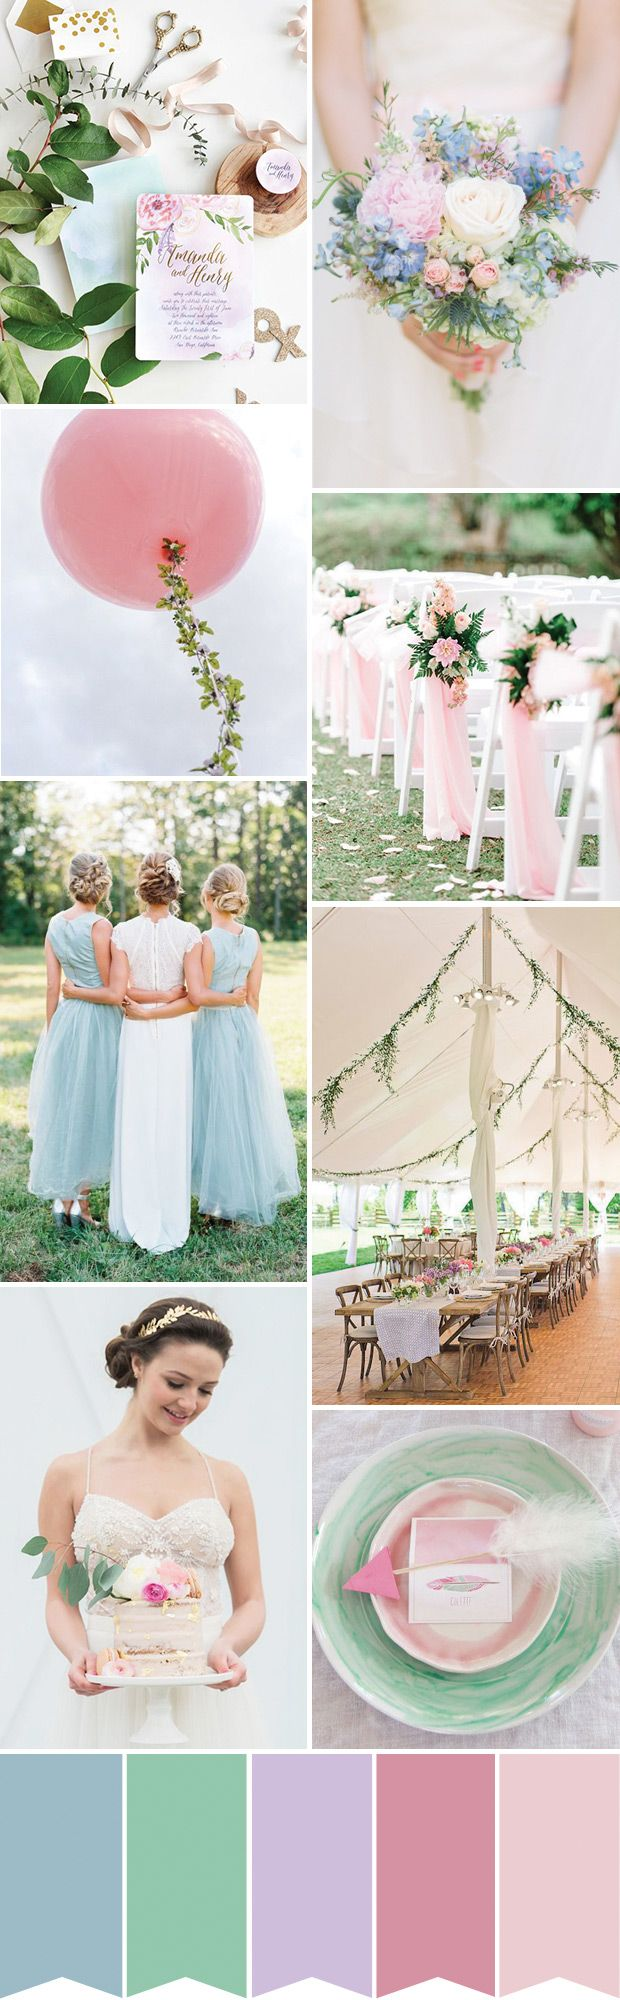 Whimsical Pastel Wedding Inspiration // www.onefabday.com